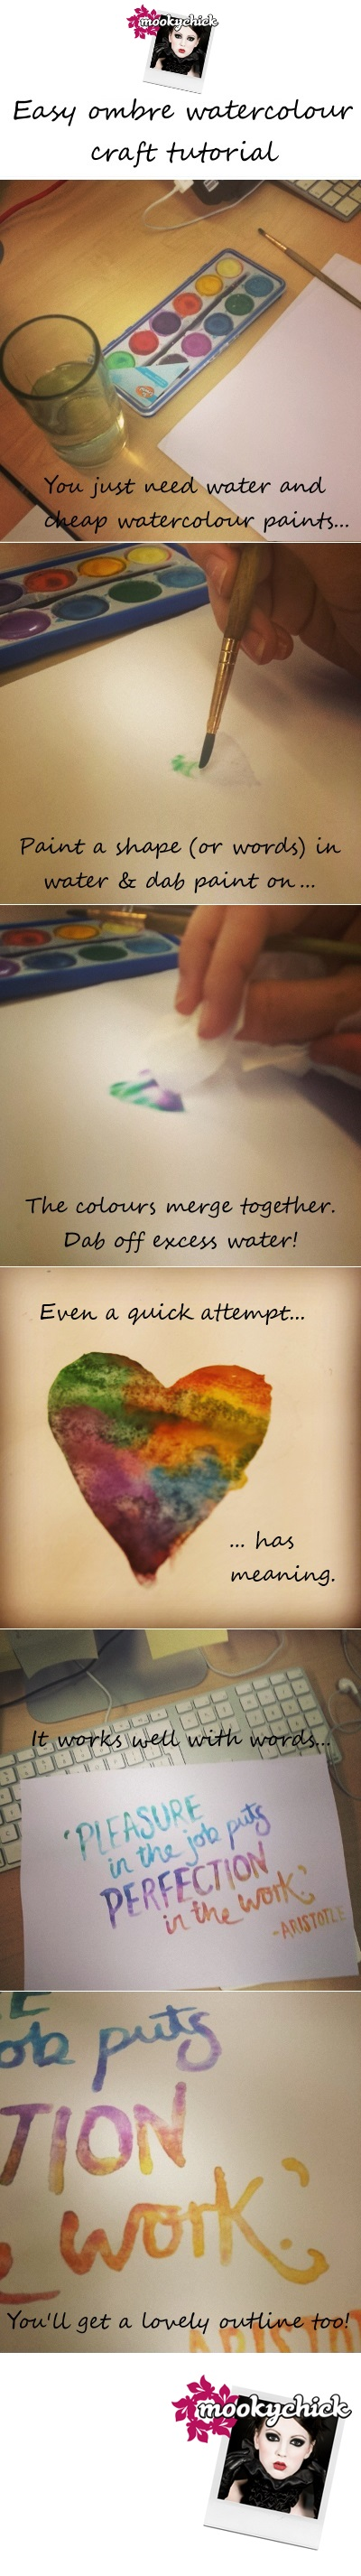 rainbow watercolour craft